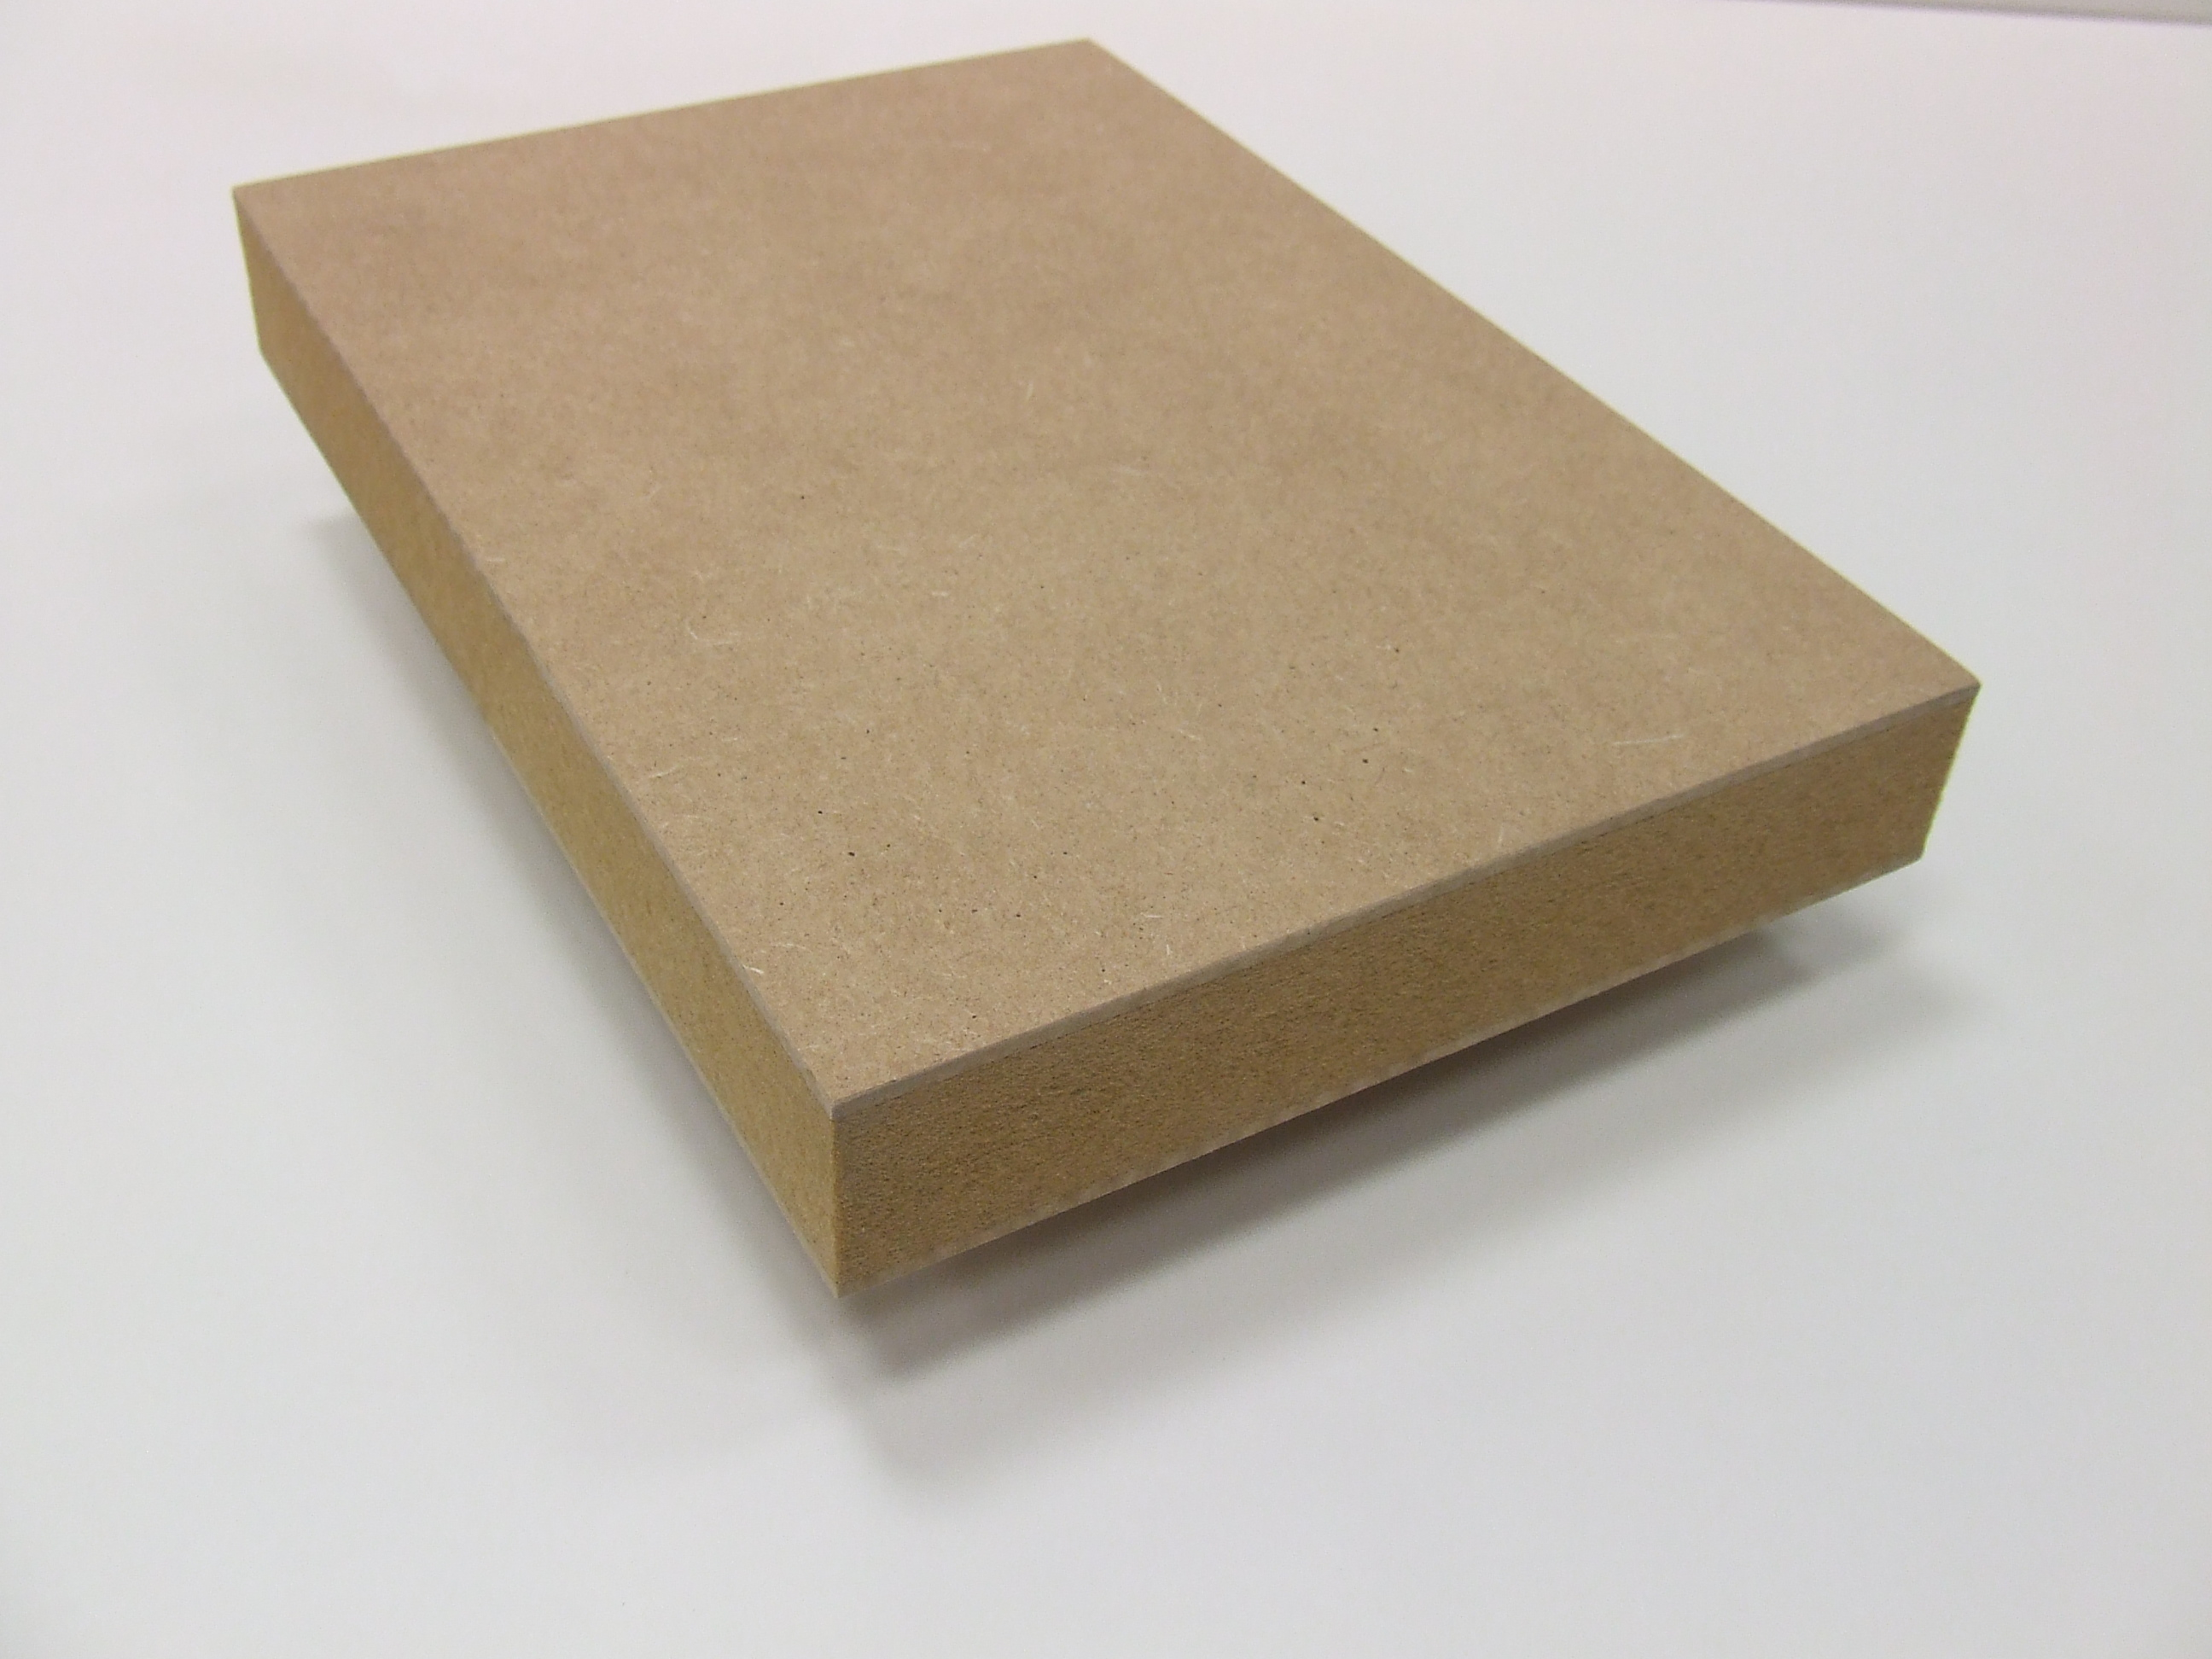 Mdf Offers Smooth Surfaces And A Uniformly Dense Core Which Make It  #756040 2592x1944